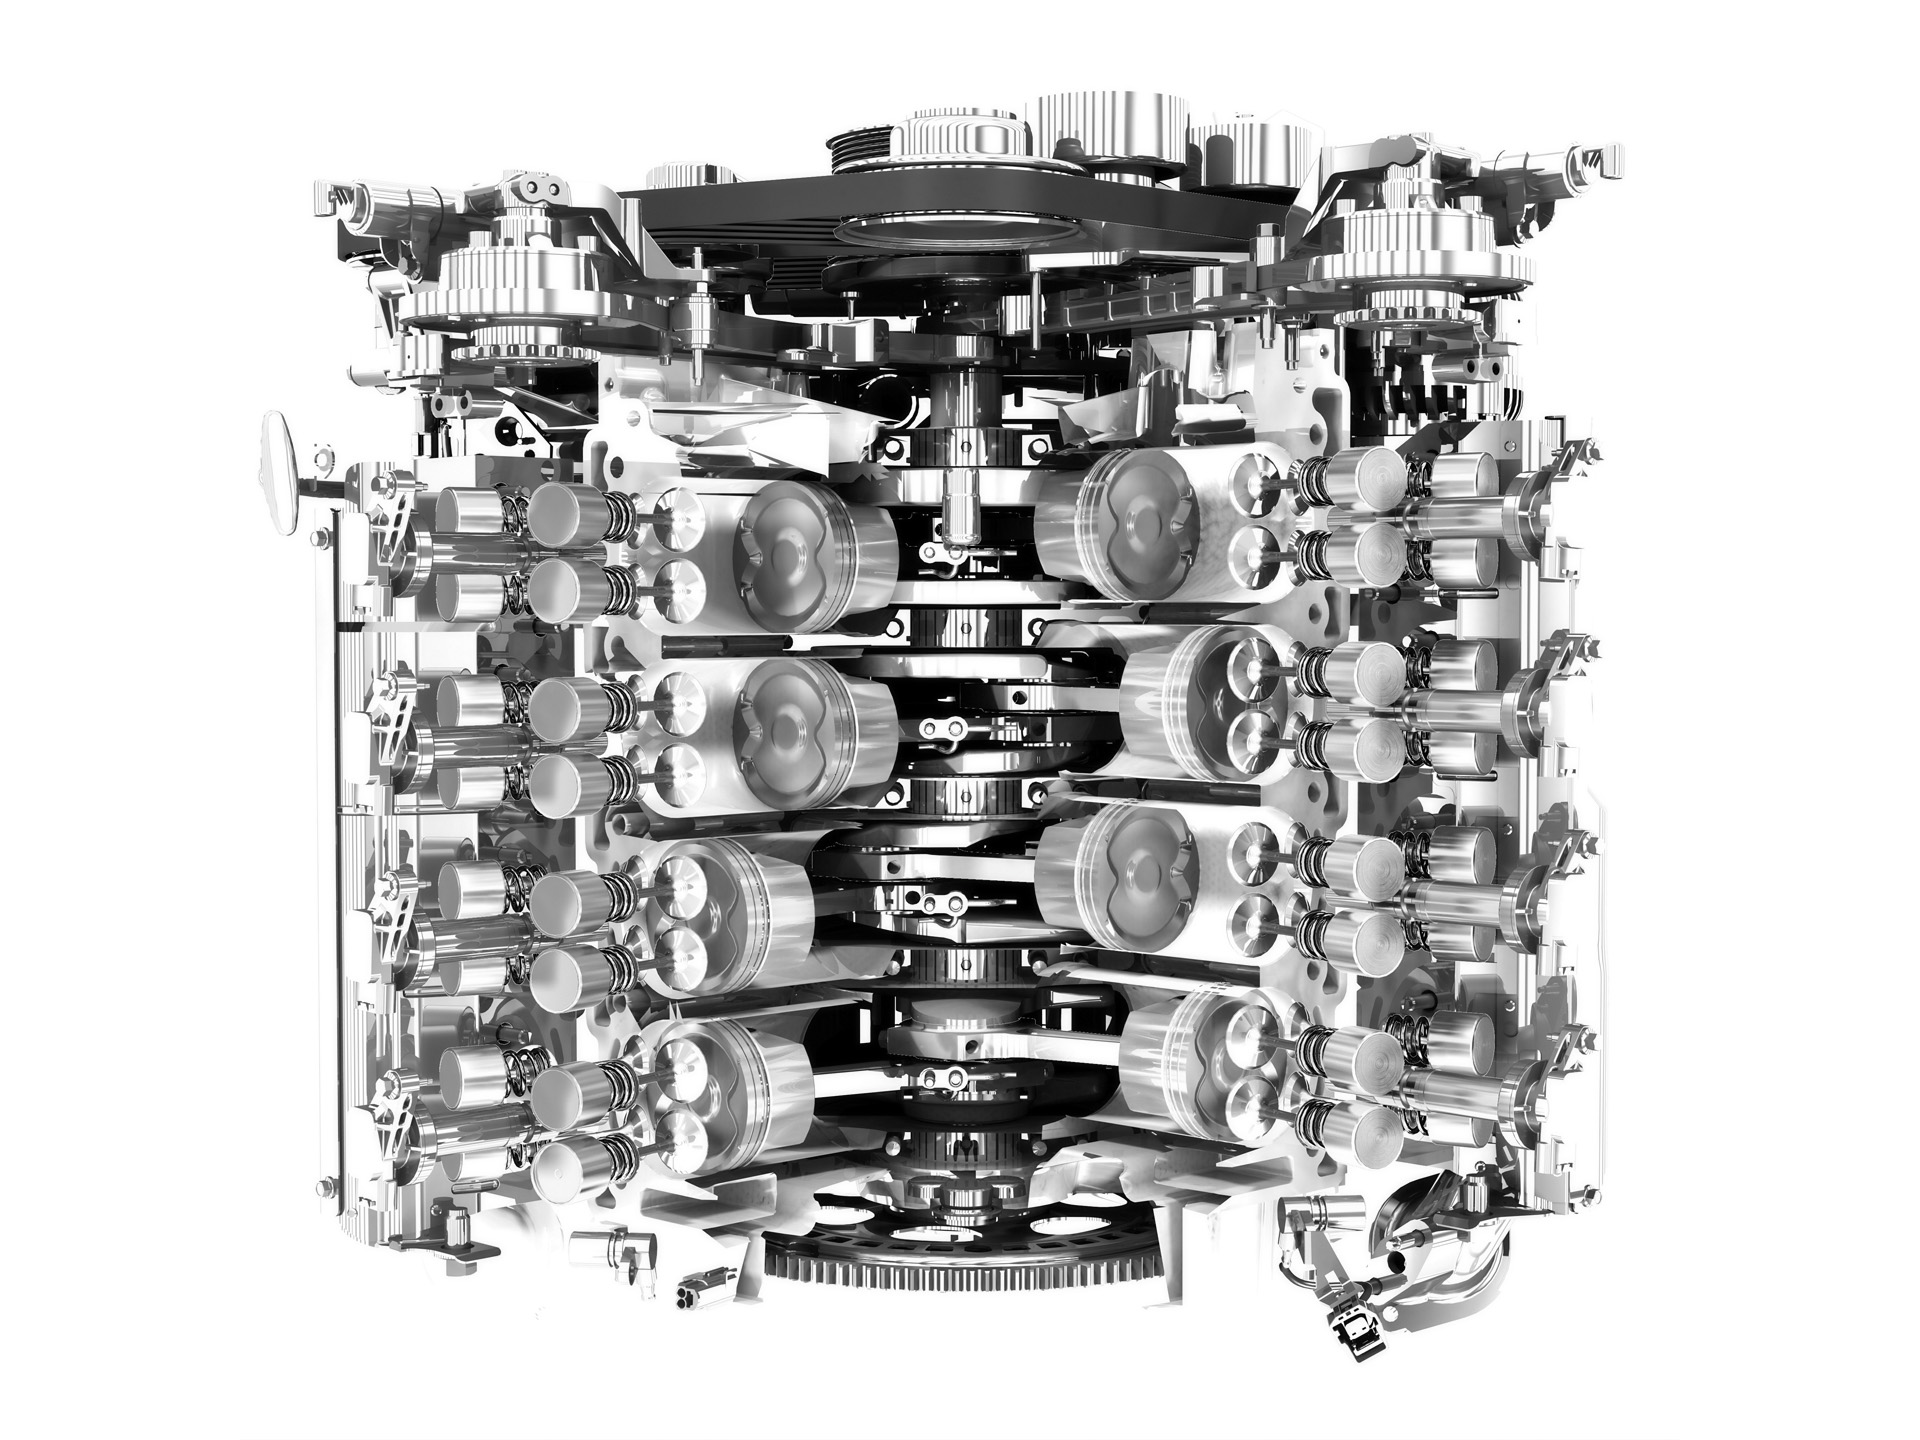 Sample P1437 Engine